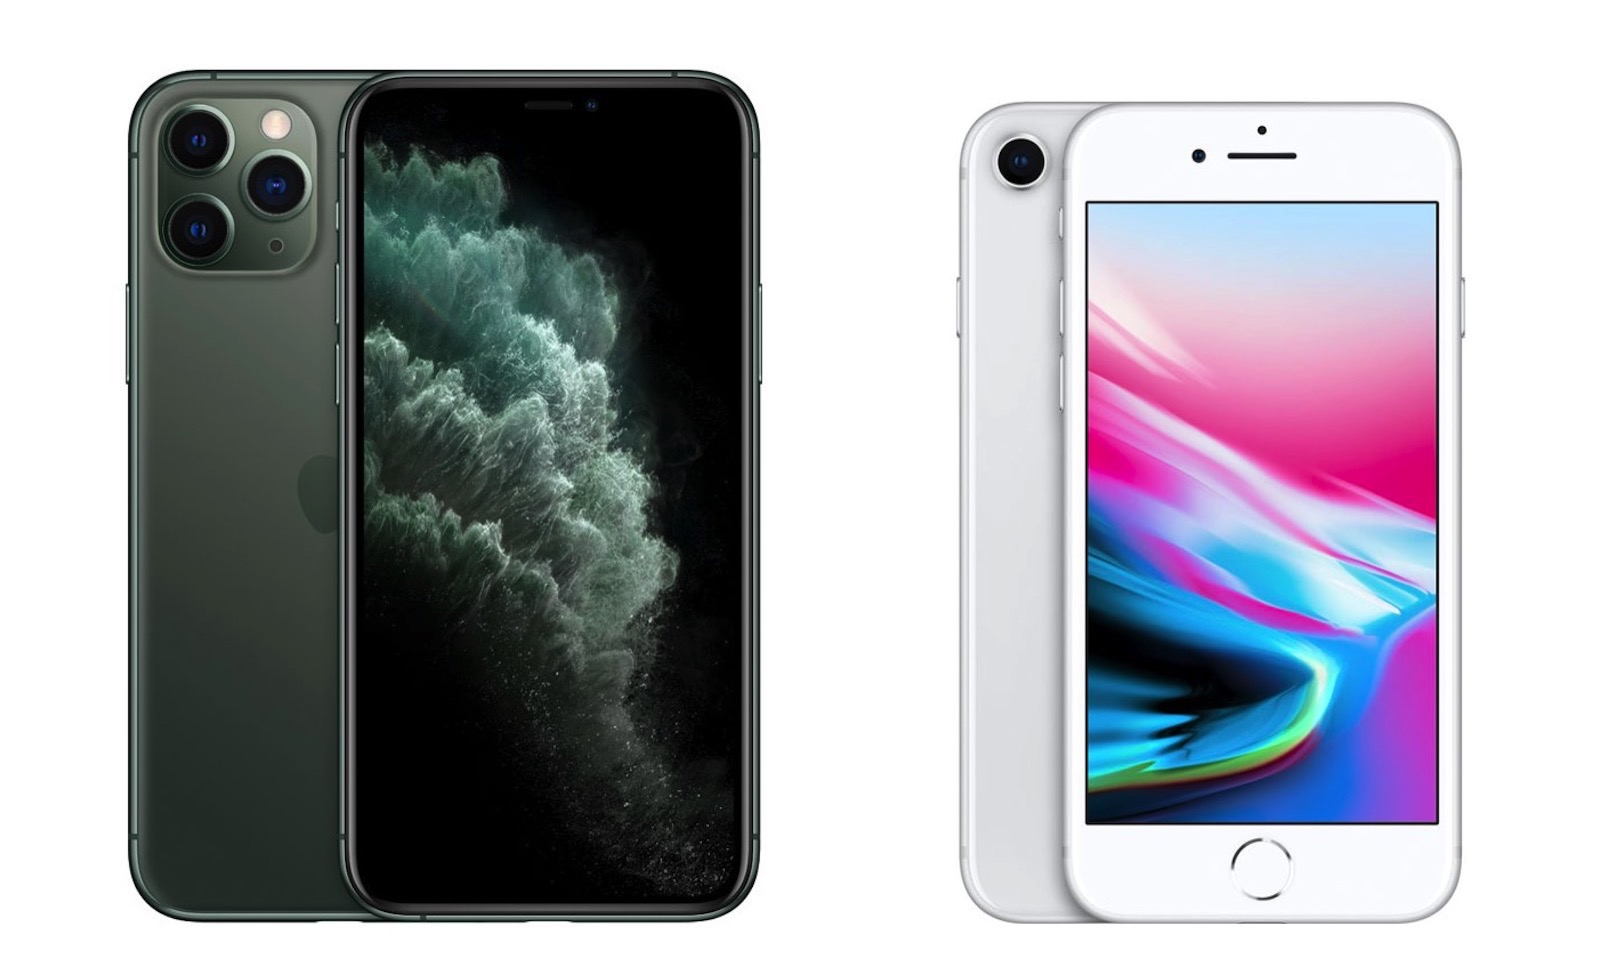 Iphone 11pro vs iphone8